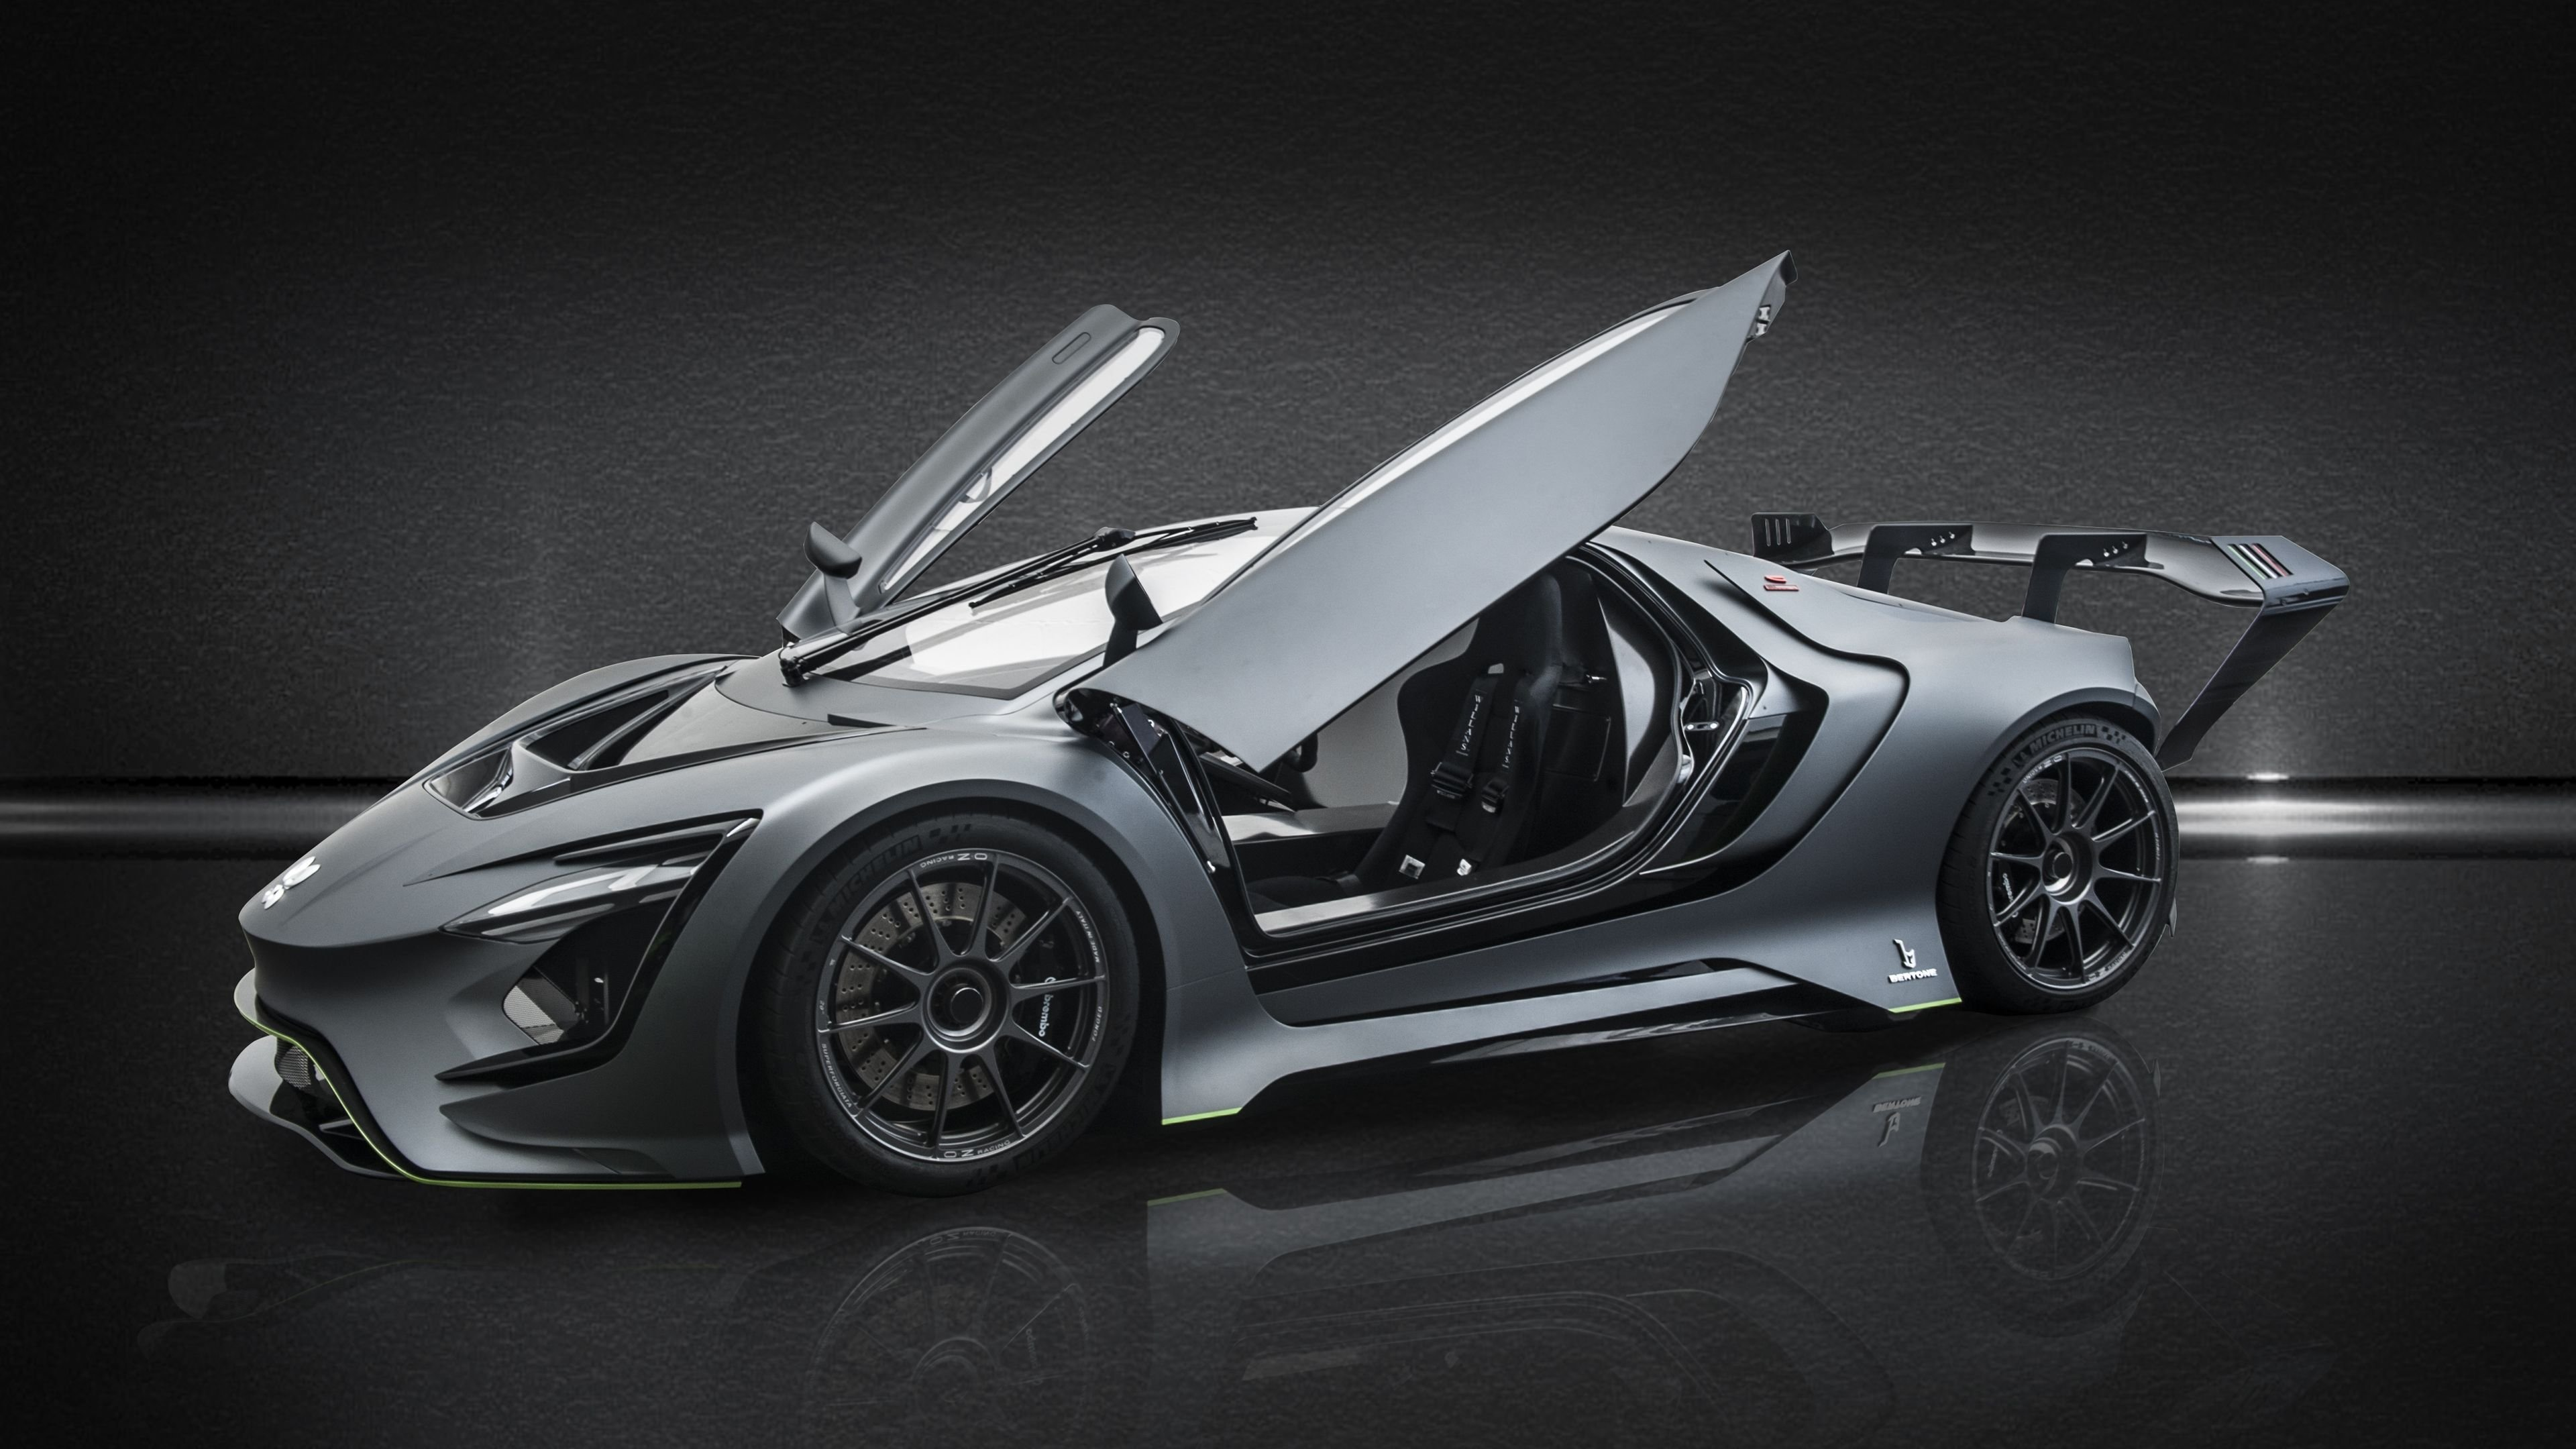 Latest Dianche Bertone Bss Gt One 2018 Side View 4K Hd Wallpapers Free Download